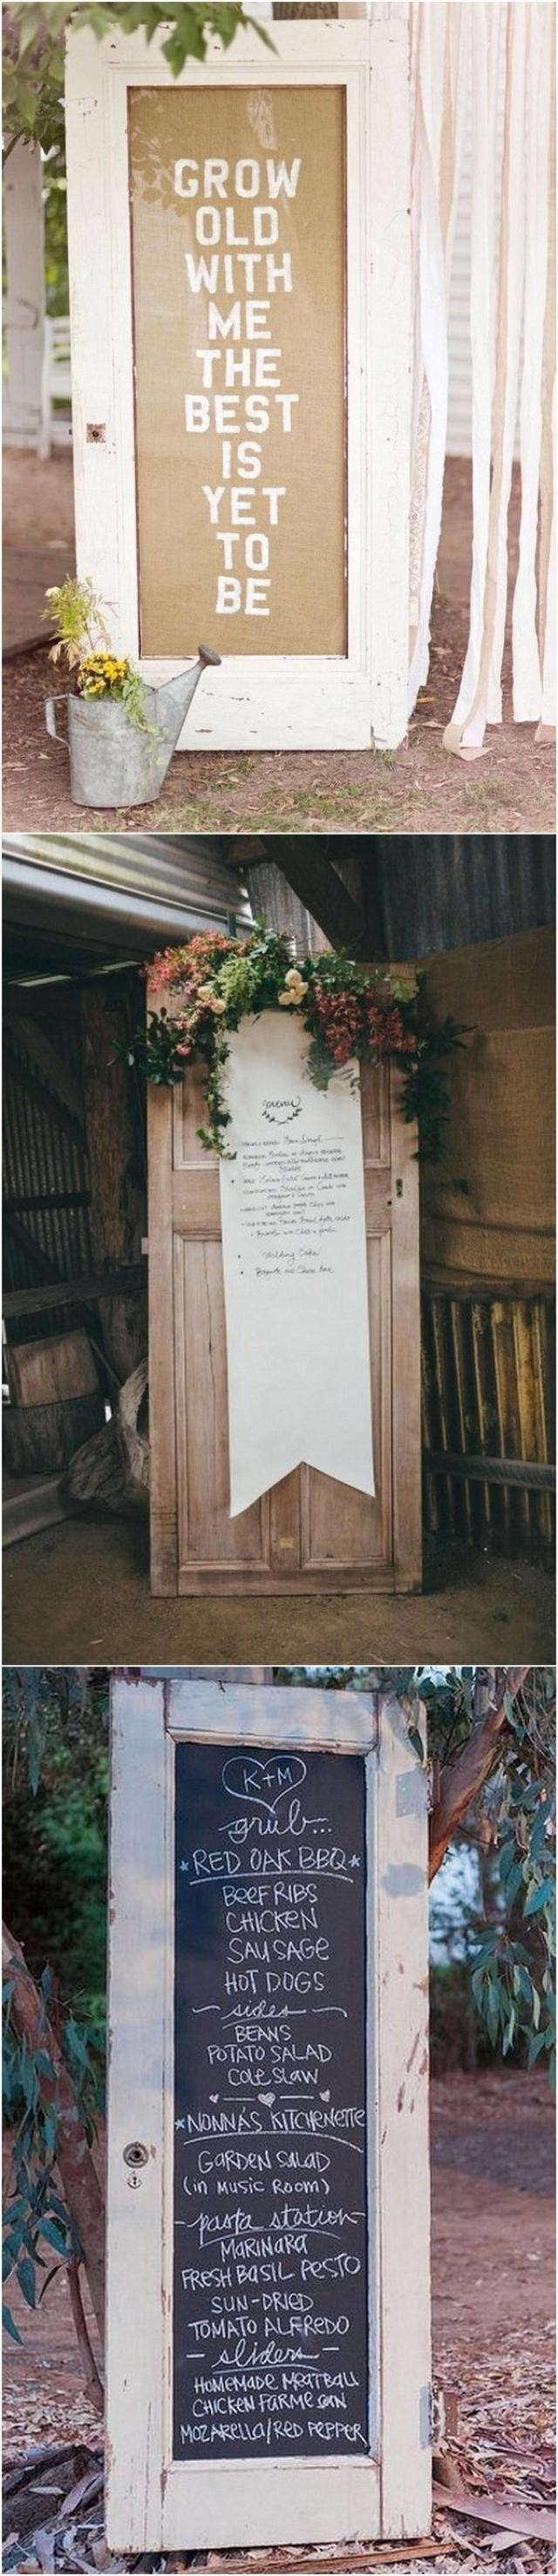 18 Wedding Decoration Ideas With Vintage Old Doors - Page 2 ...